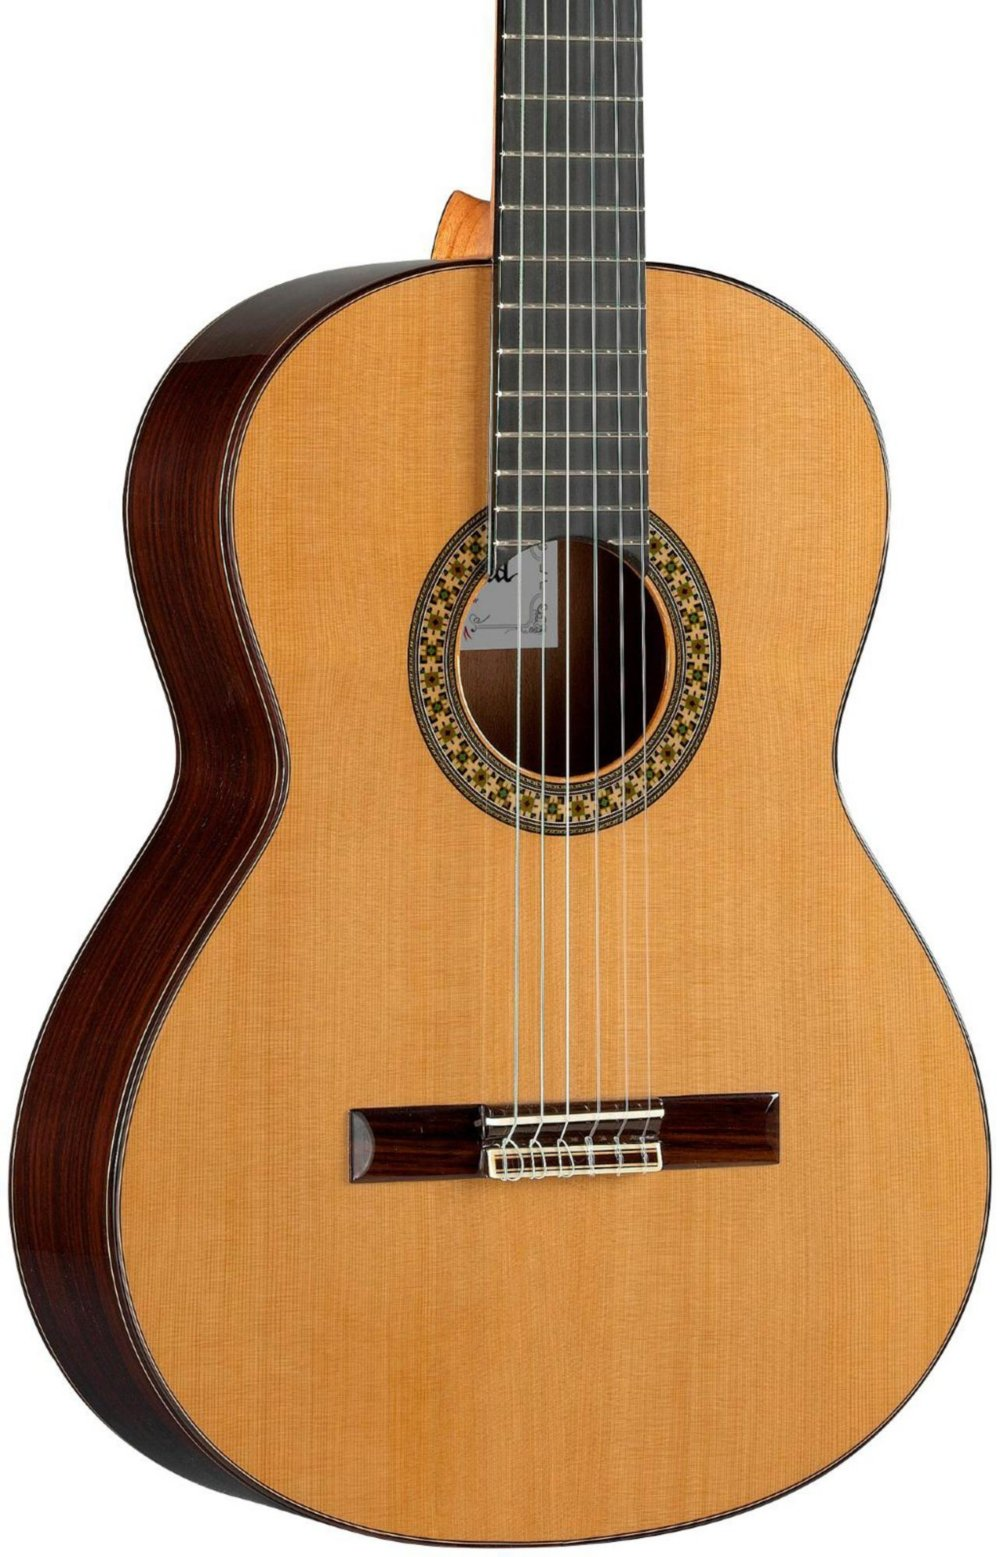 Alhambra 6 String 4OP-US Classical Conservatory Guitar, Right Handed, Solid Canadian Cedar